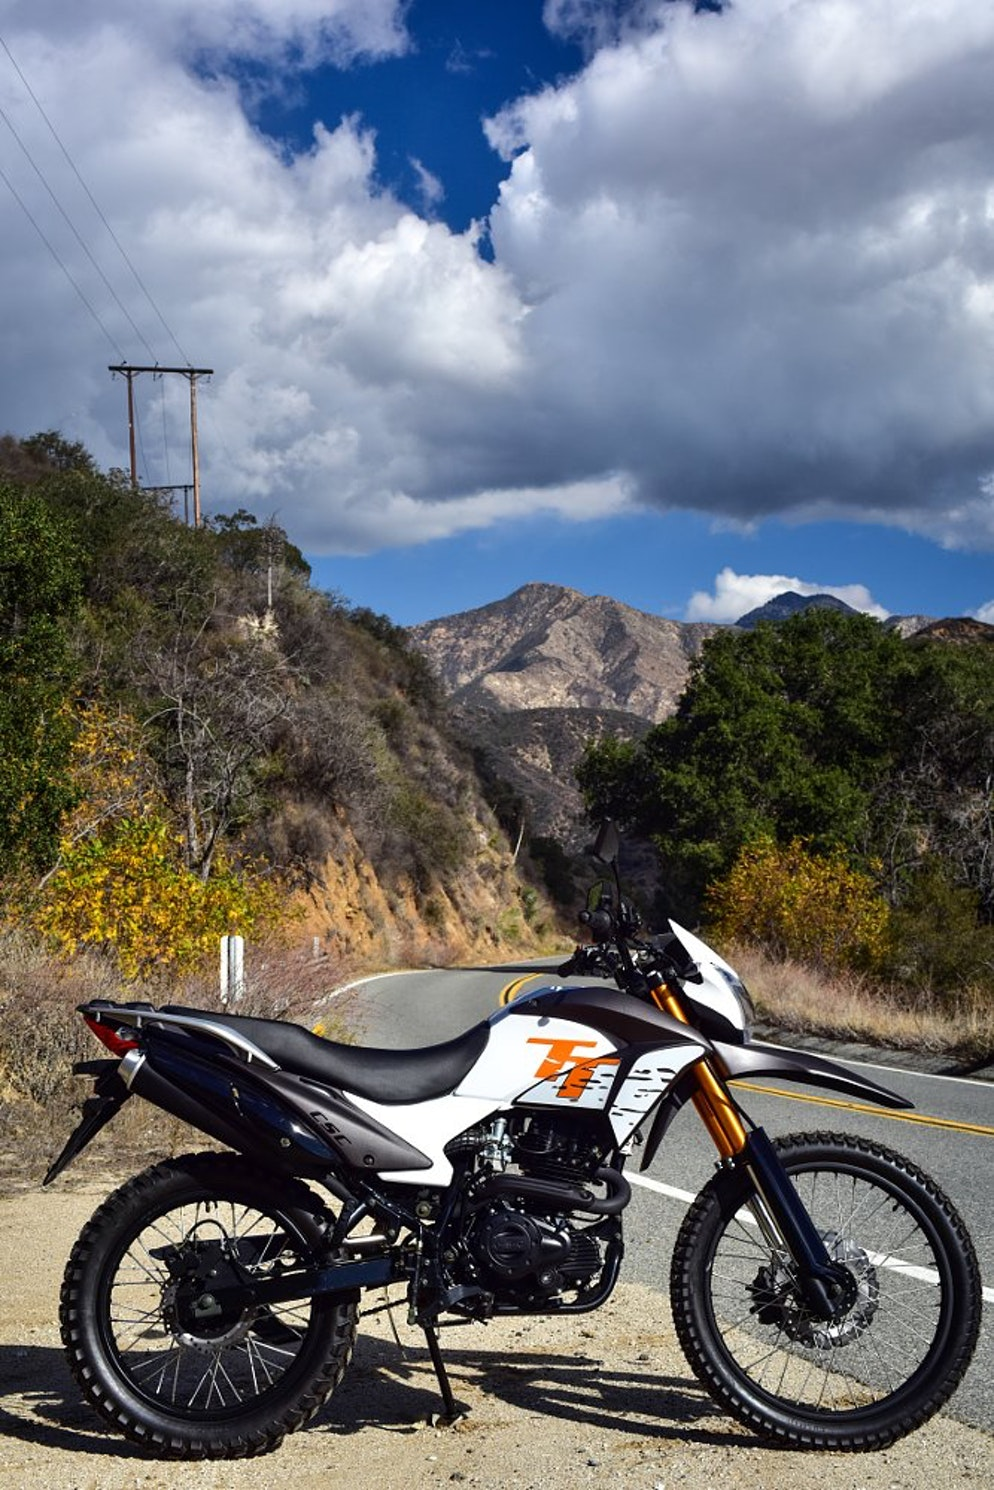 A new dual-sport motorcycle for $1,895? - RevZilla